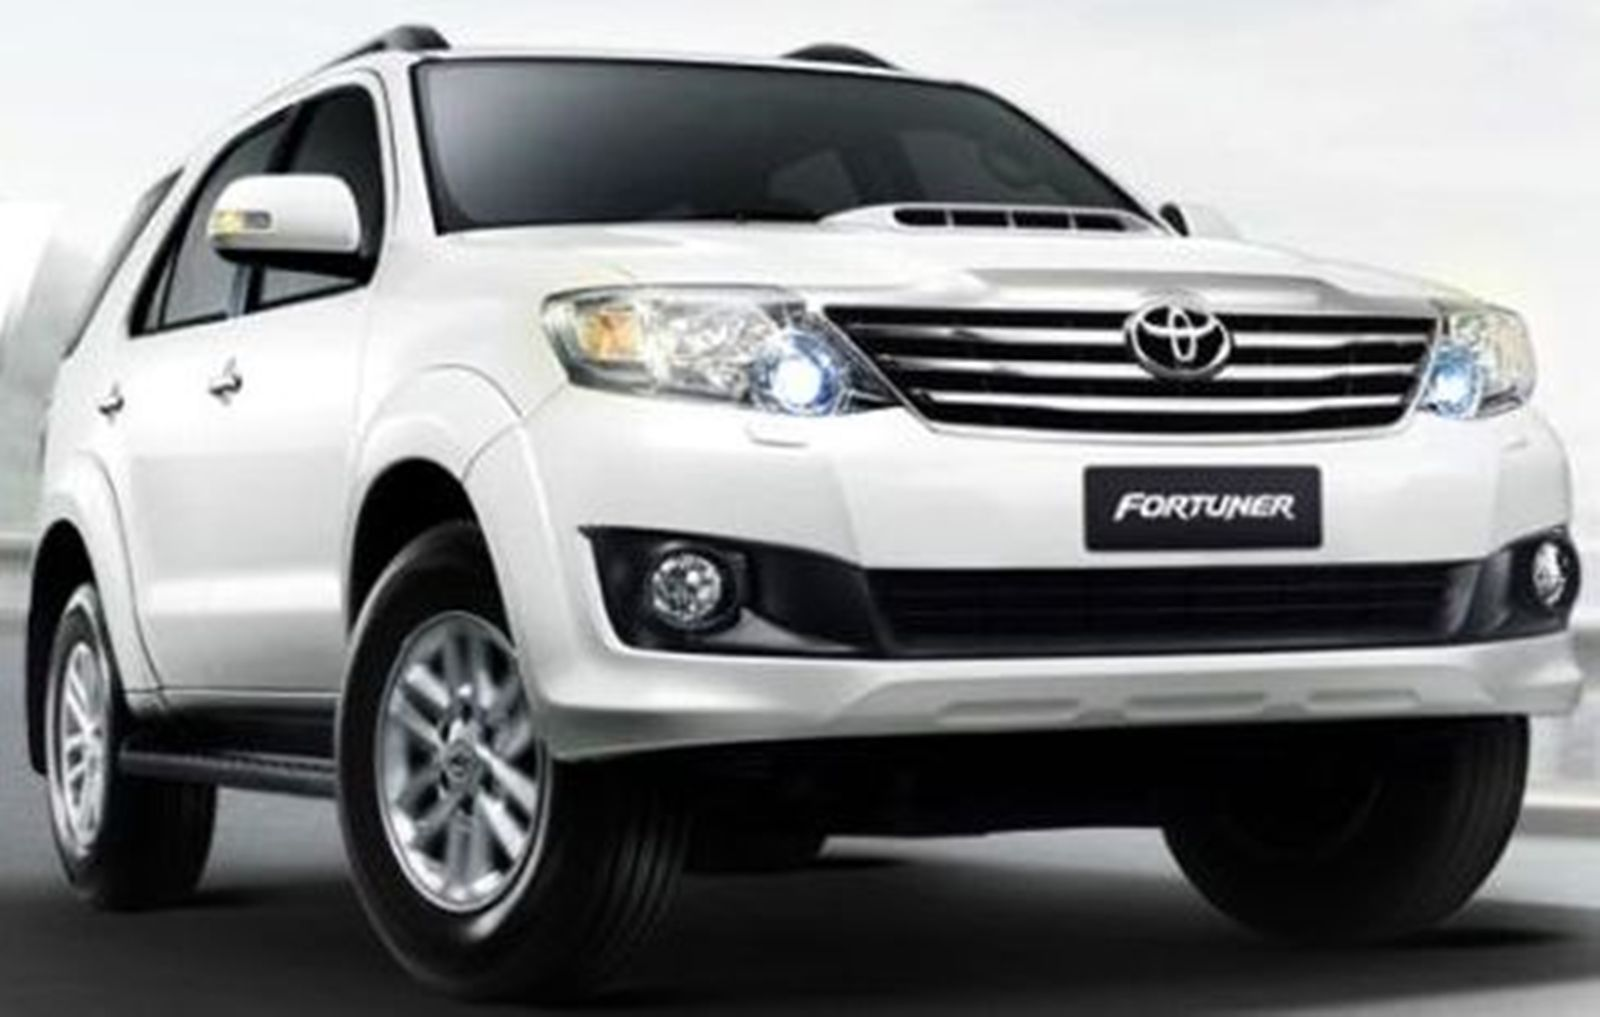 Kekurangan Fortuner 2013 Review